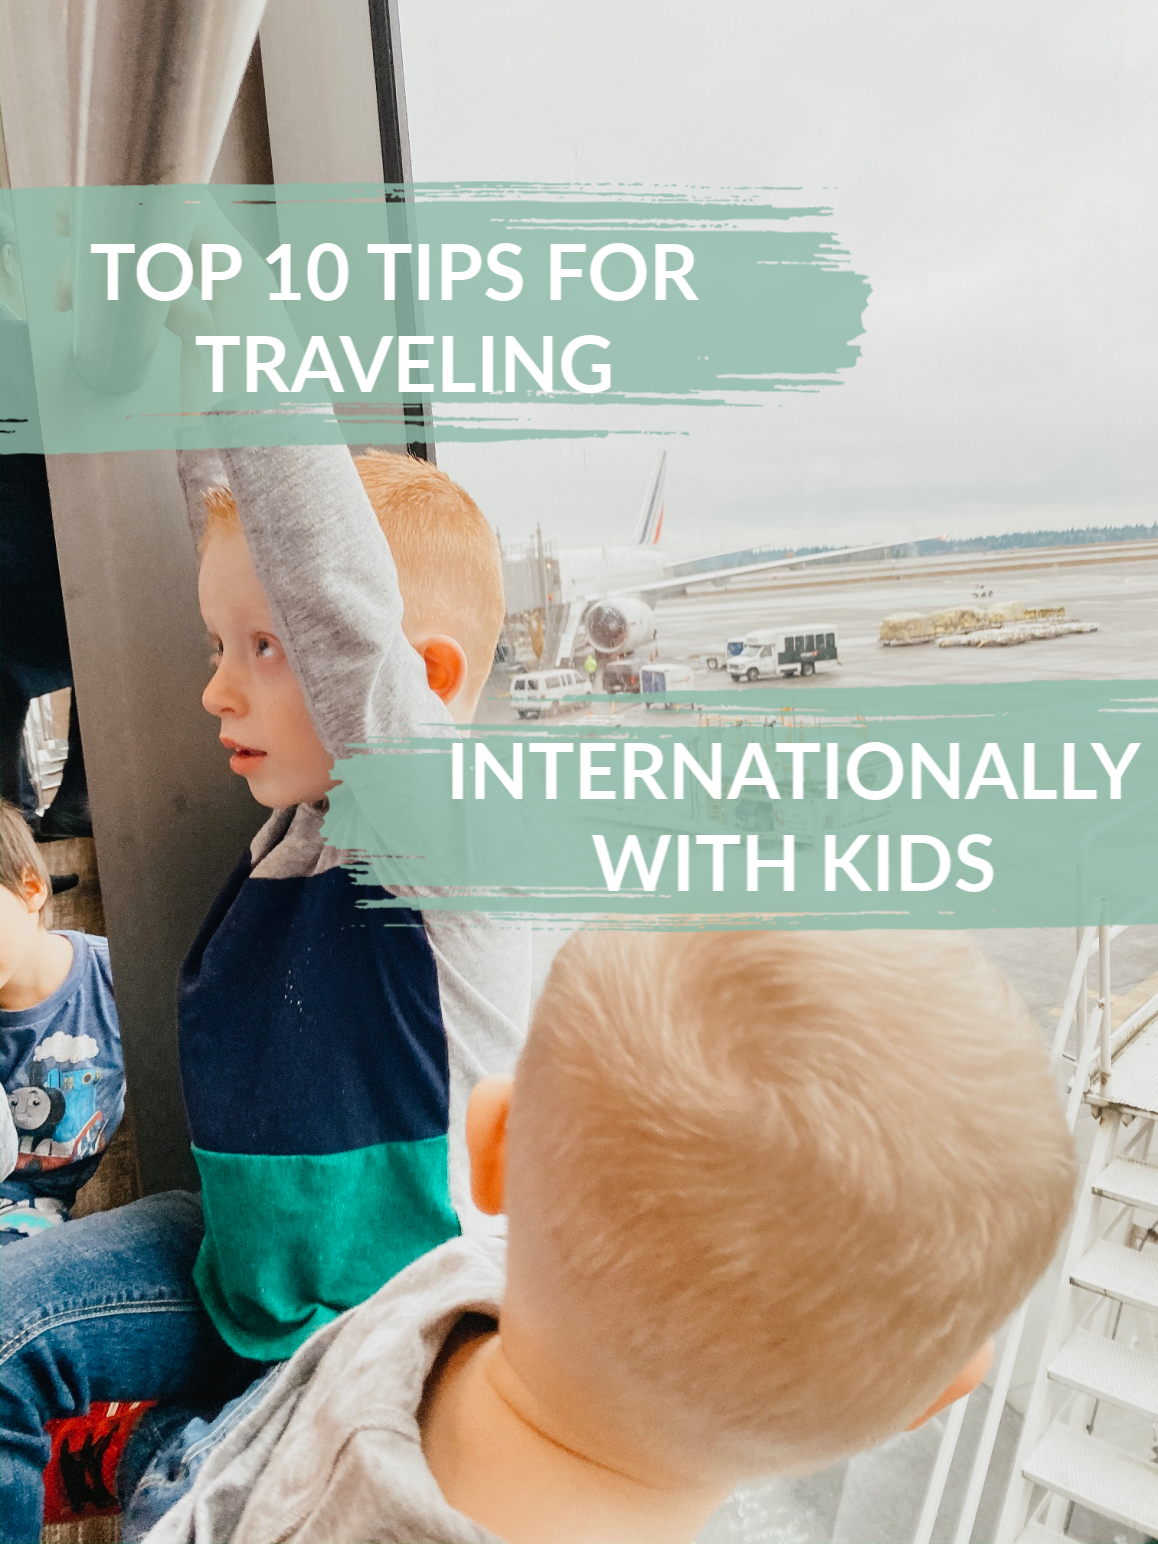 10 tips for international travel with kids